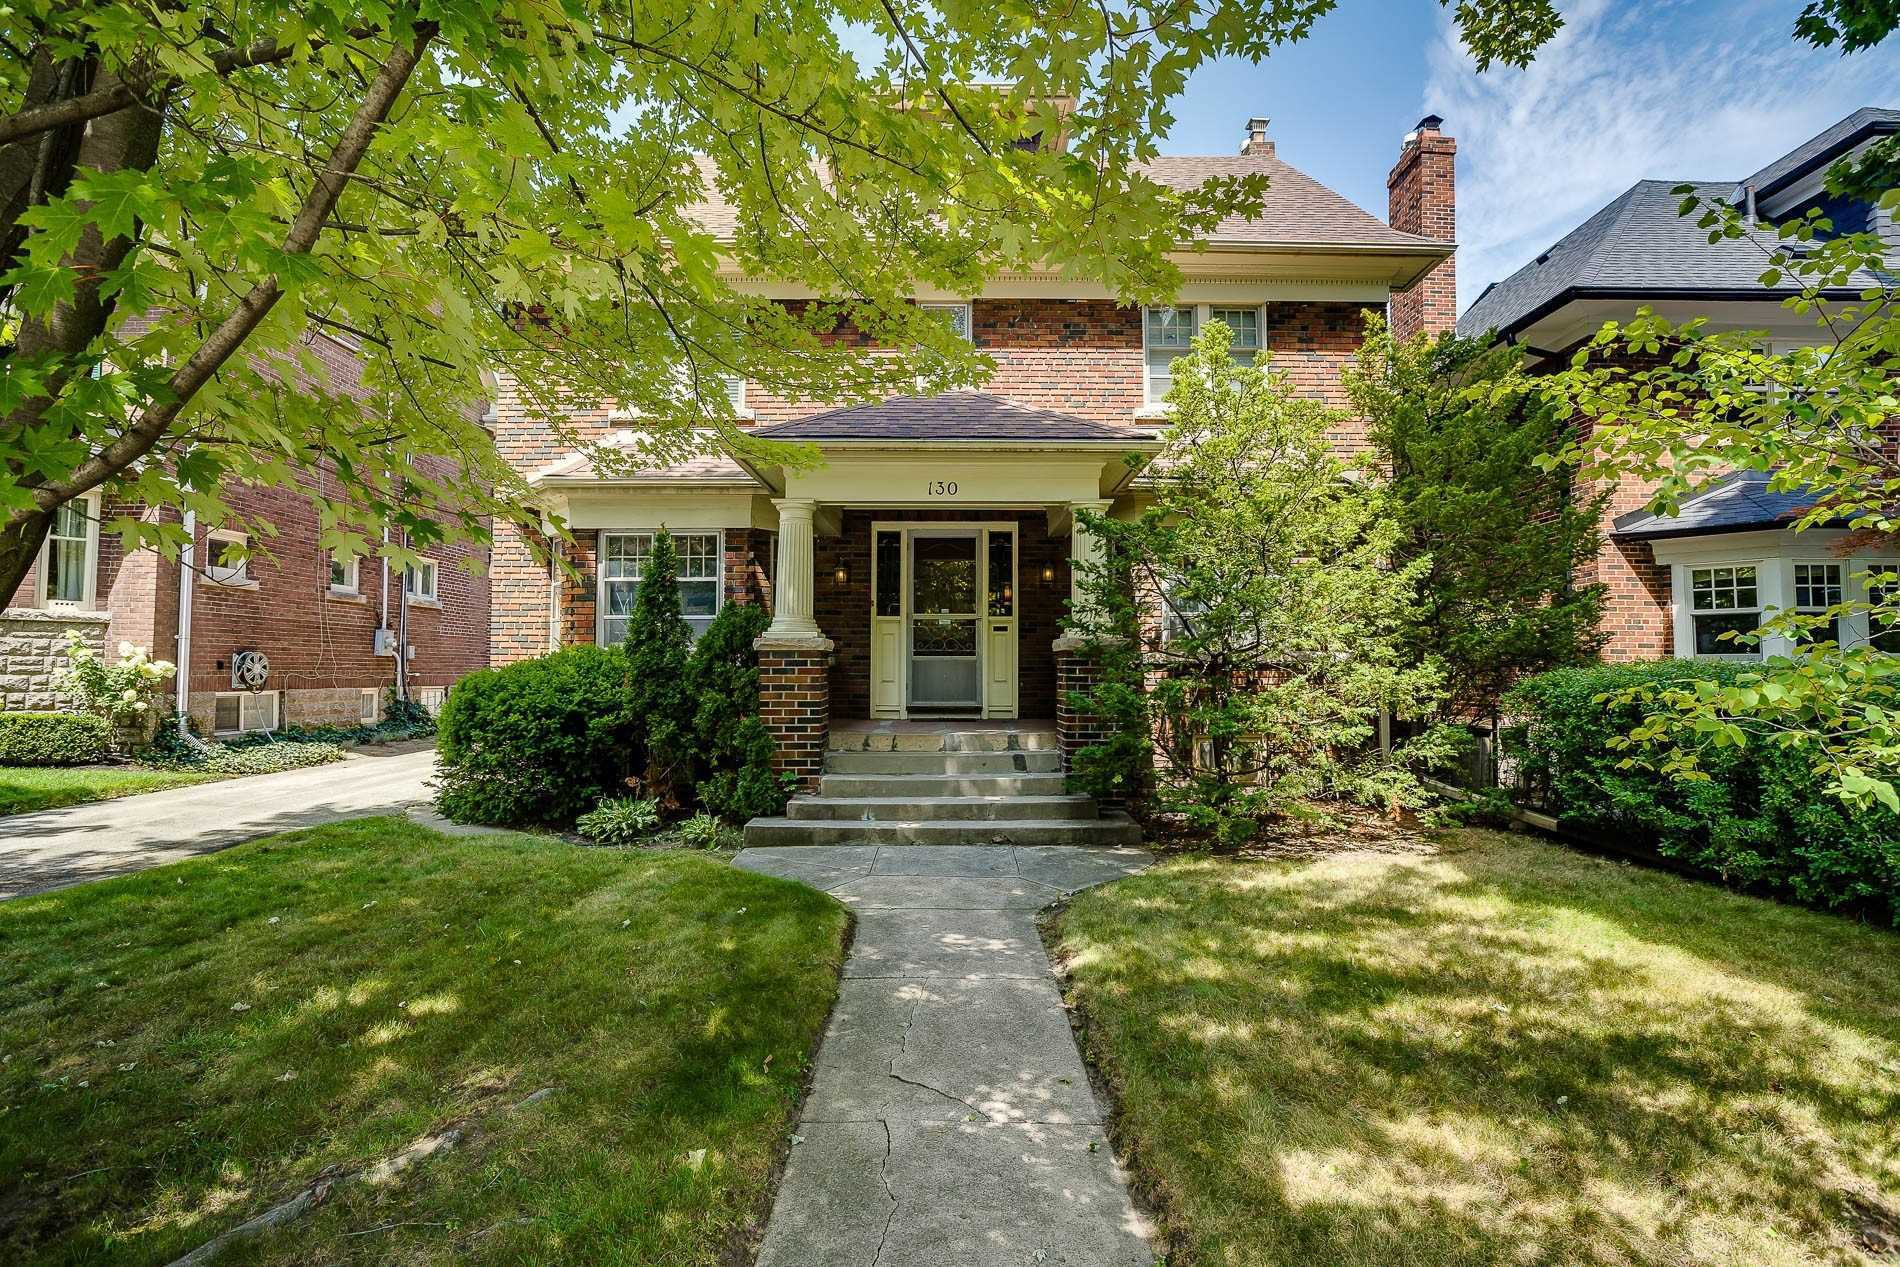 Main Photo: 130 Golfdale Road in Toronto: Lawrence Park North House (2 1/2 Storey) for sale (Toronto C04)  : MLS®# C4481737